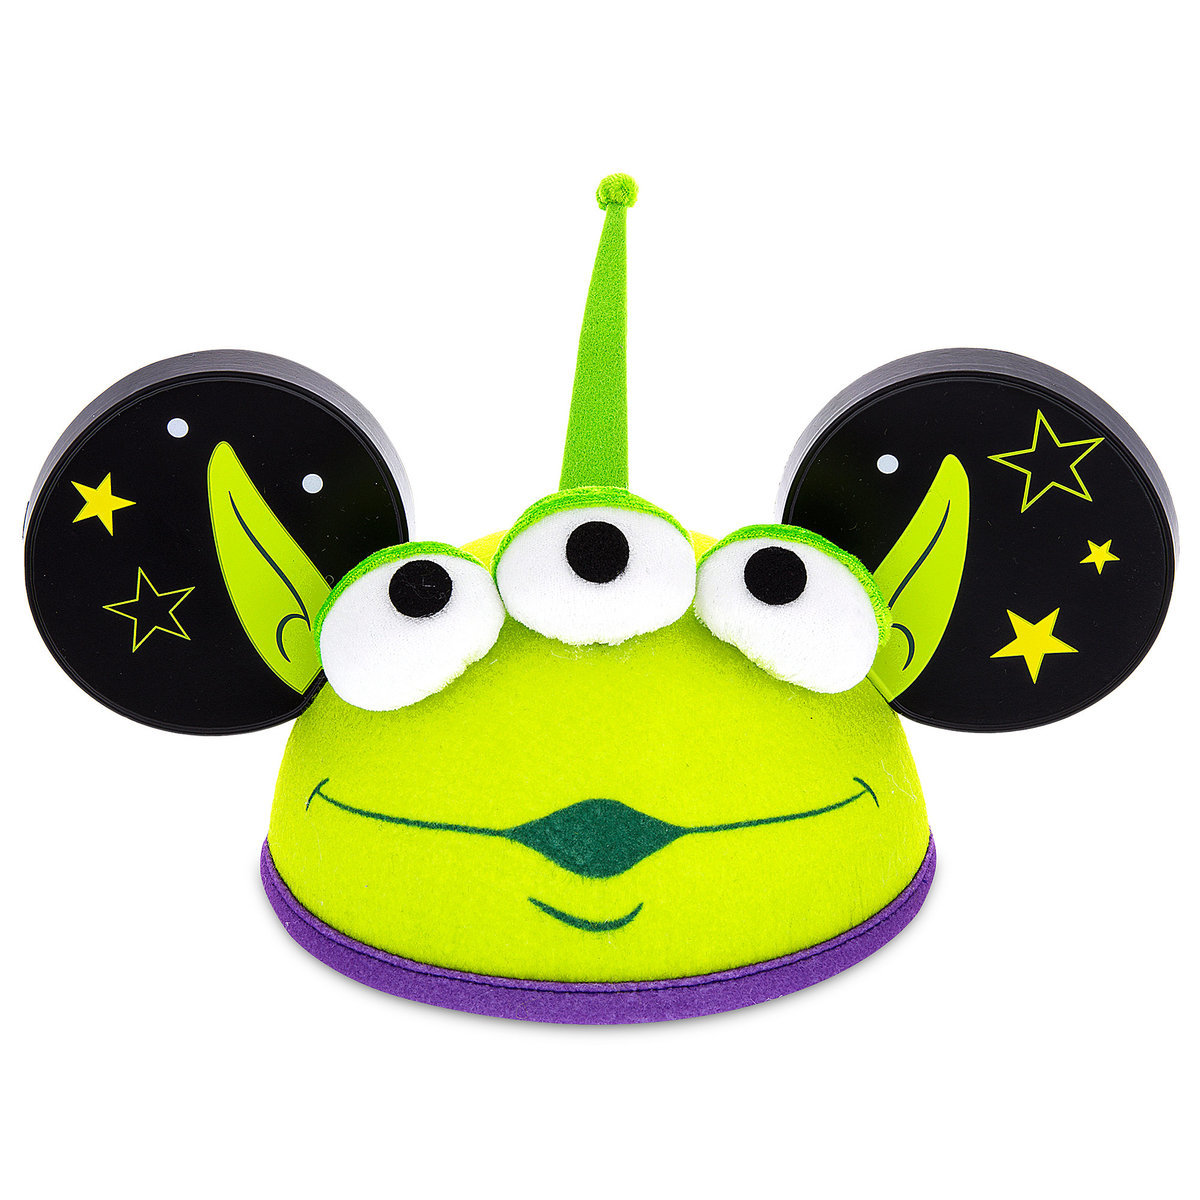 Toy Story Alien Ear Hat for Adults | shopDisney